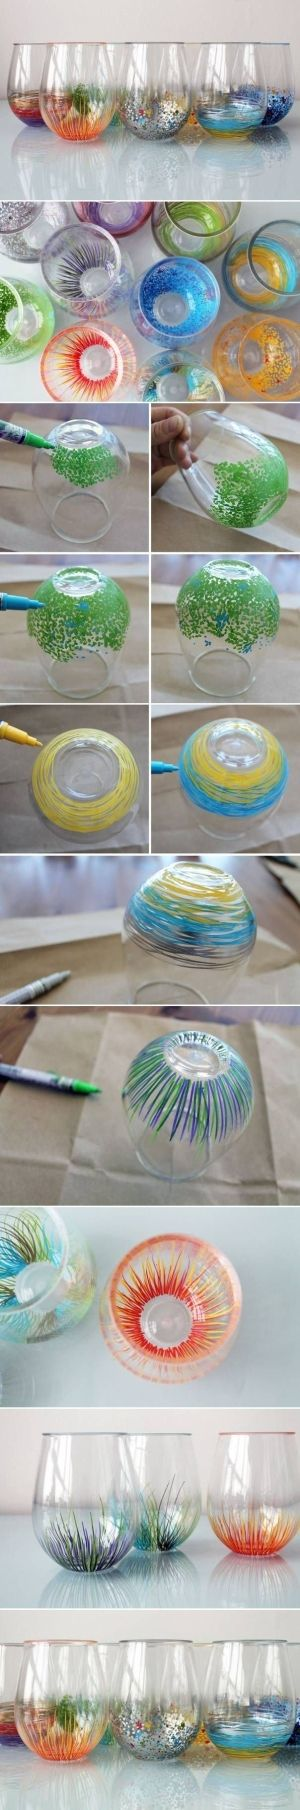 Decorated Stemless wine glasses (Sharpie Paint Markers) #sharpie #diy